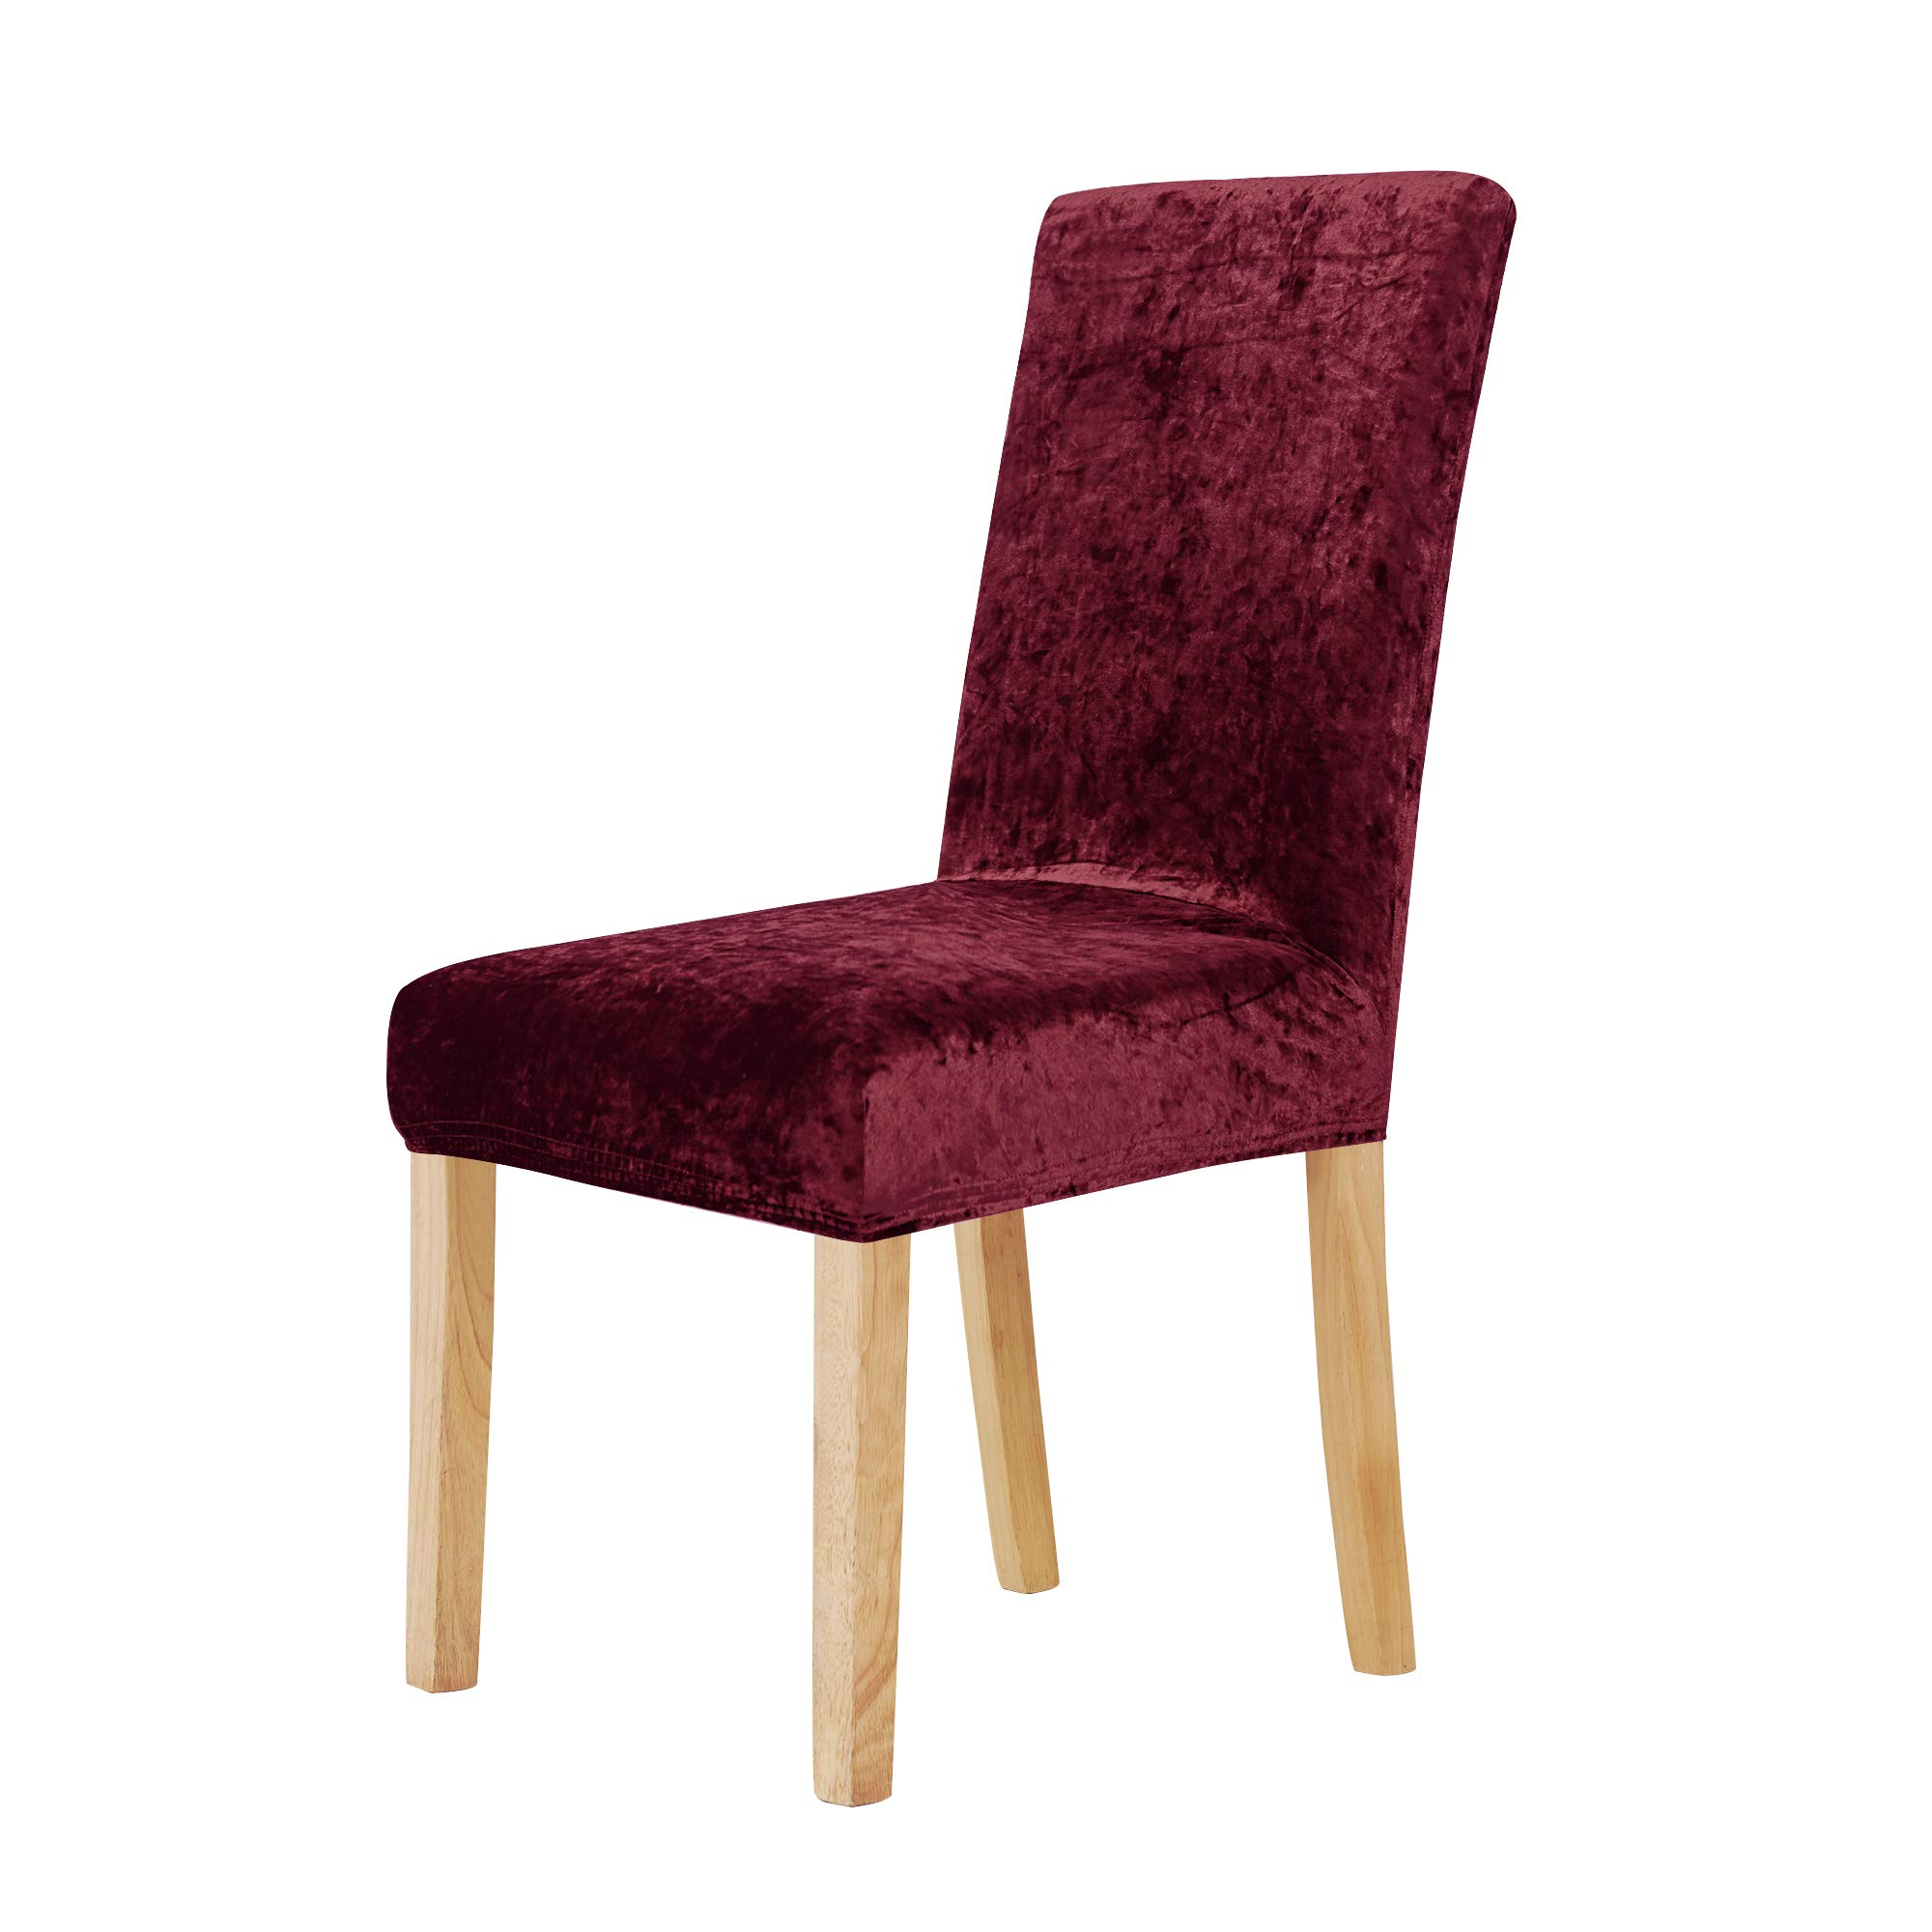 Deconovo Stretchy Velvet Chair Covers Removable Wedding Party Chair Slipcover for Dining Room Set of 4 Red by Deconovo